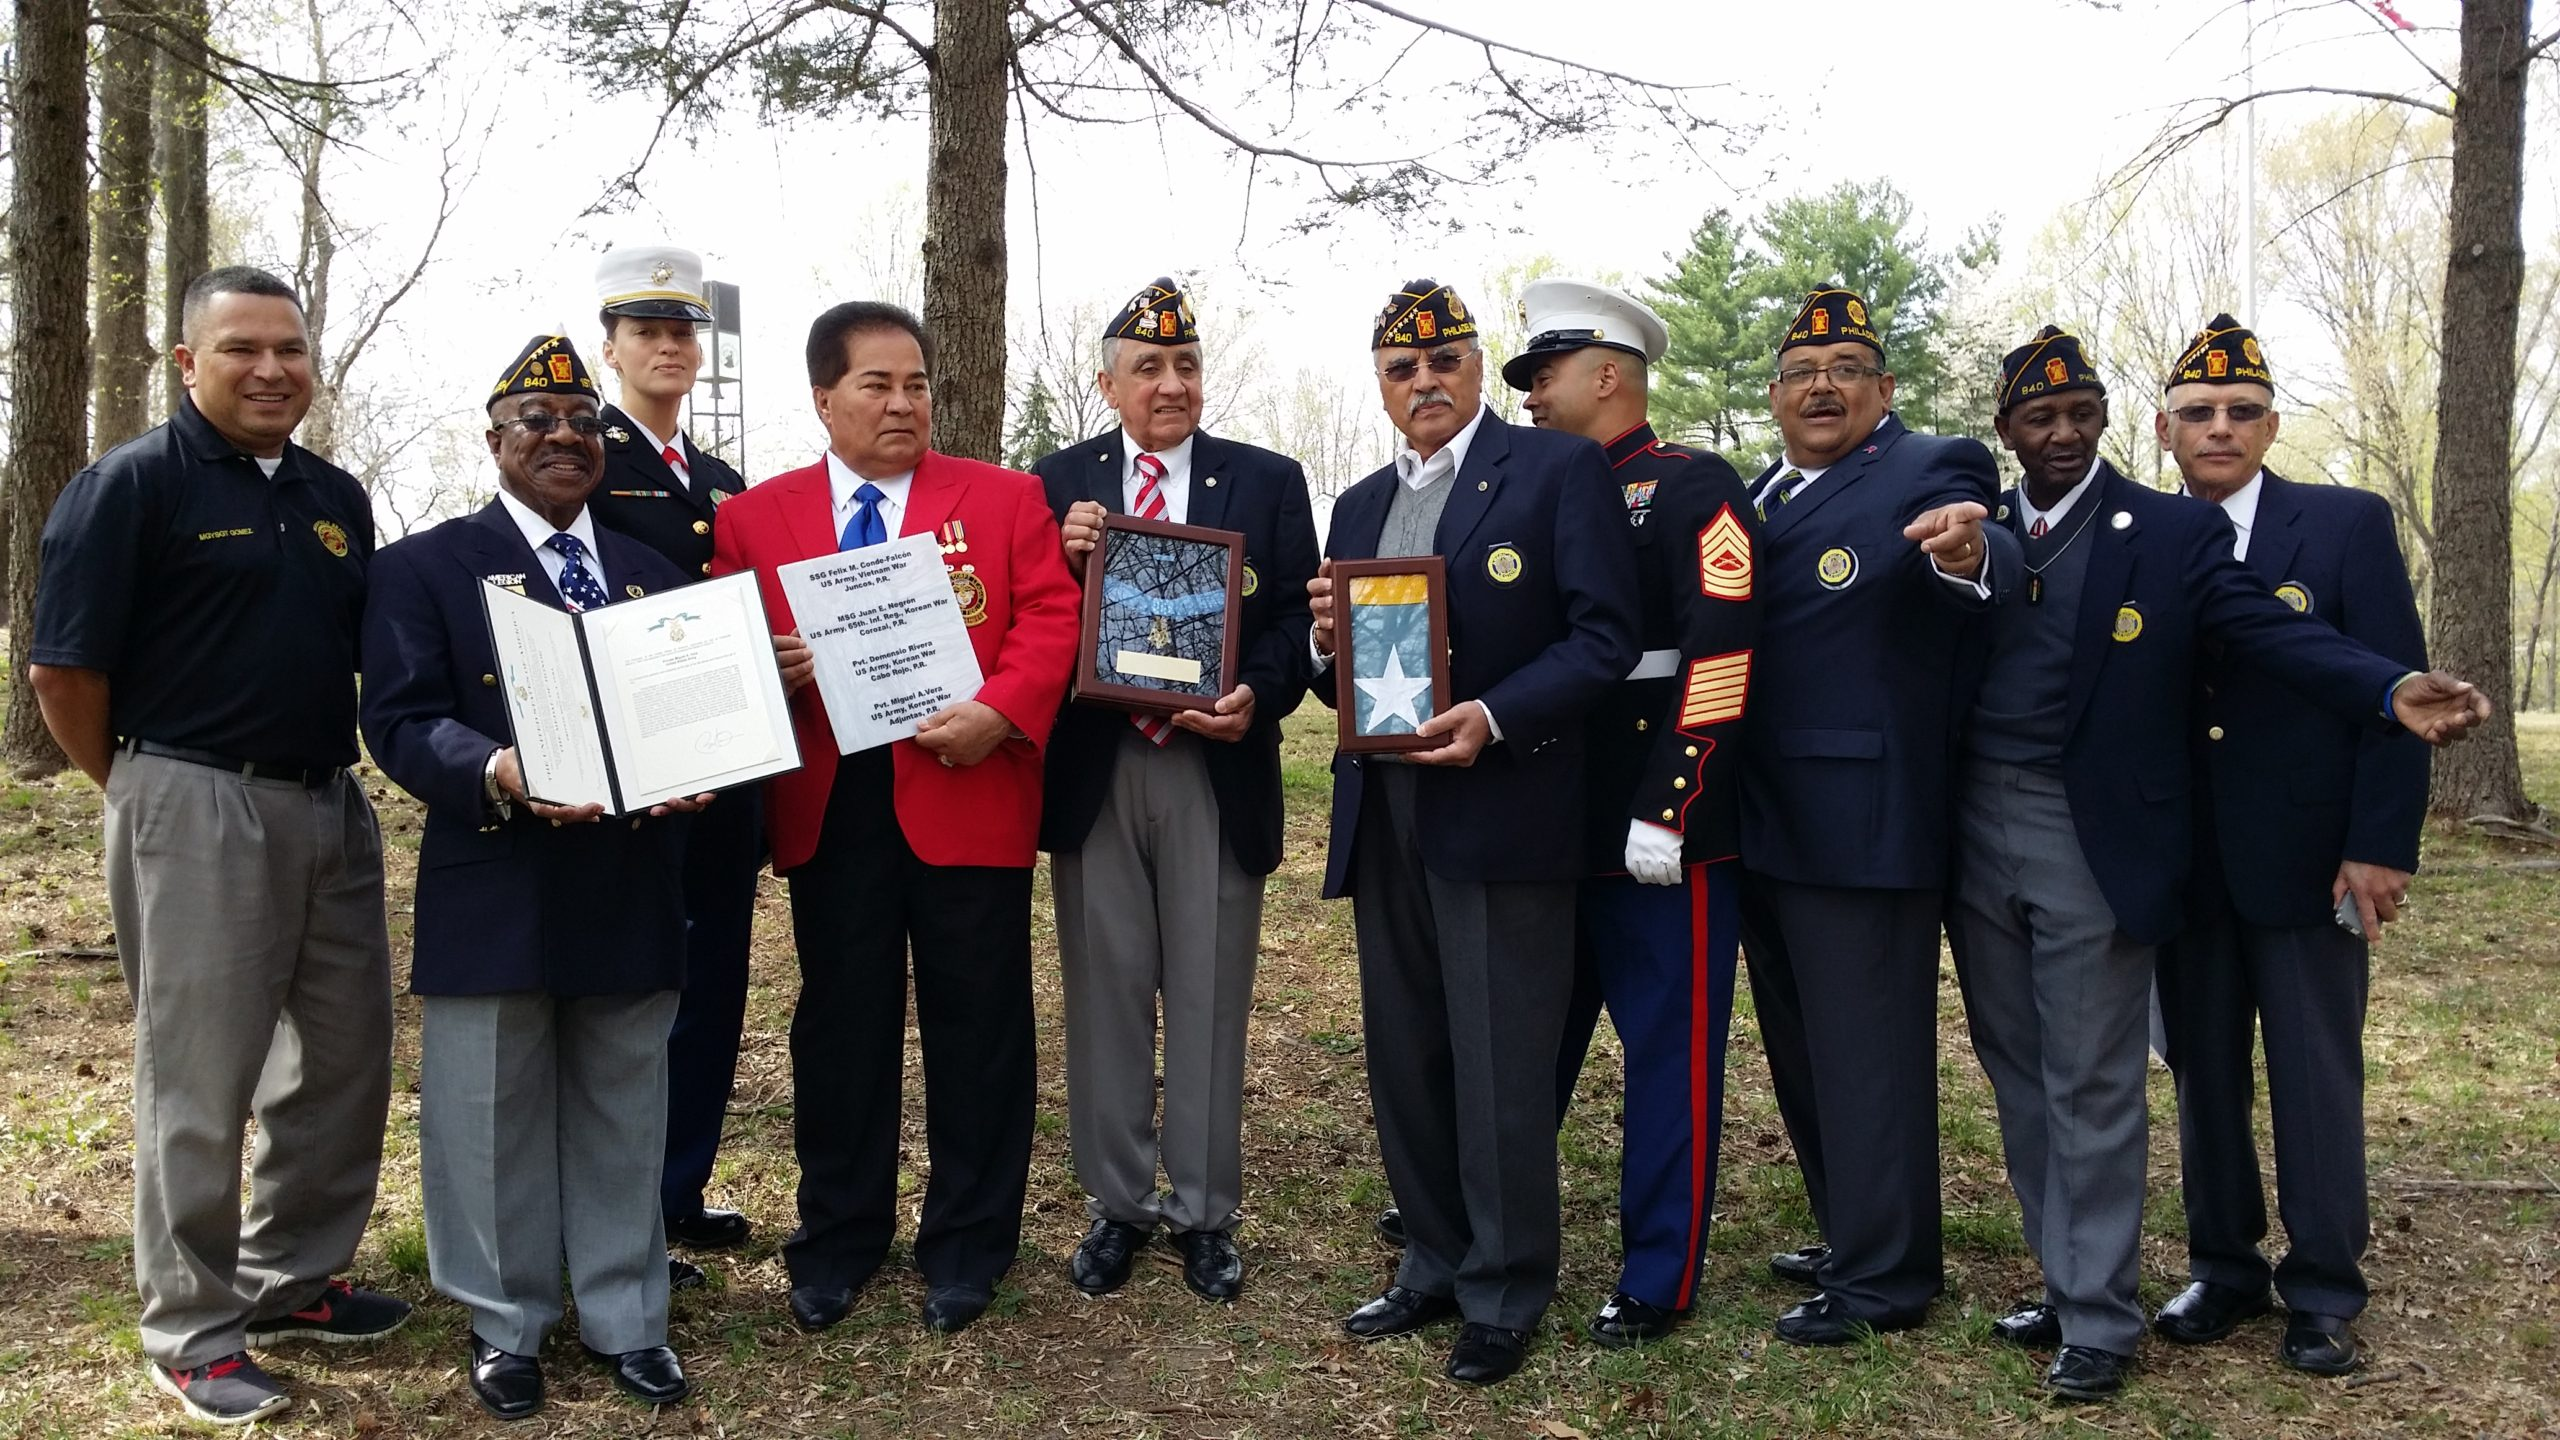 Latin American Legion Post 840 to Rededicate Puerto Rico Area of Medal of Honor Grove